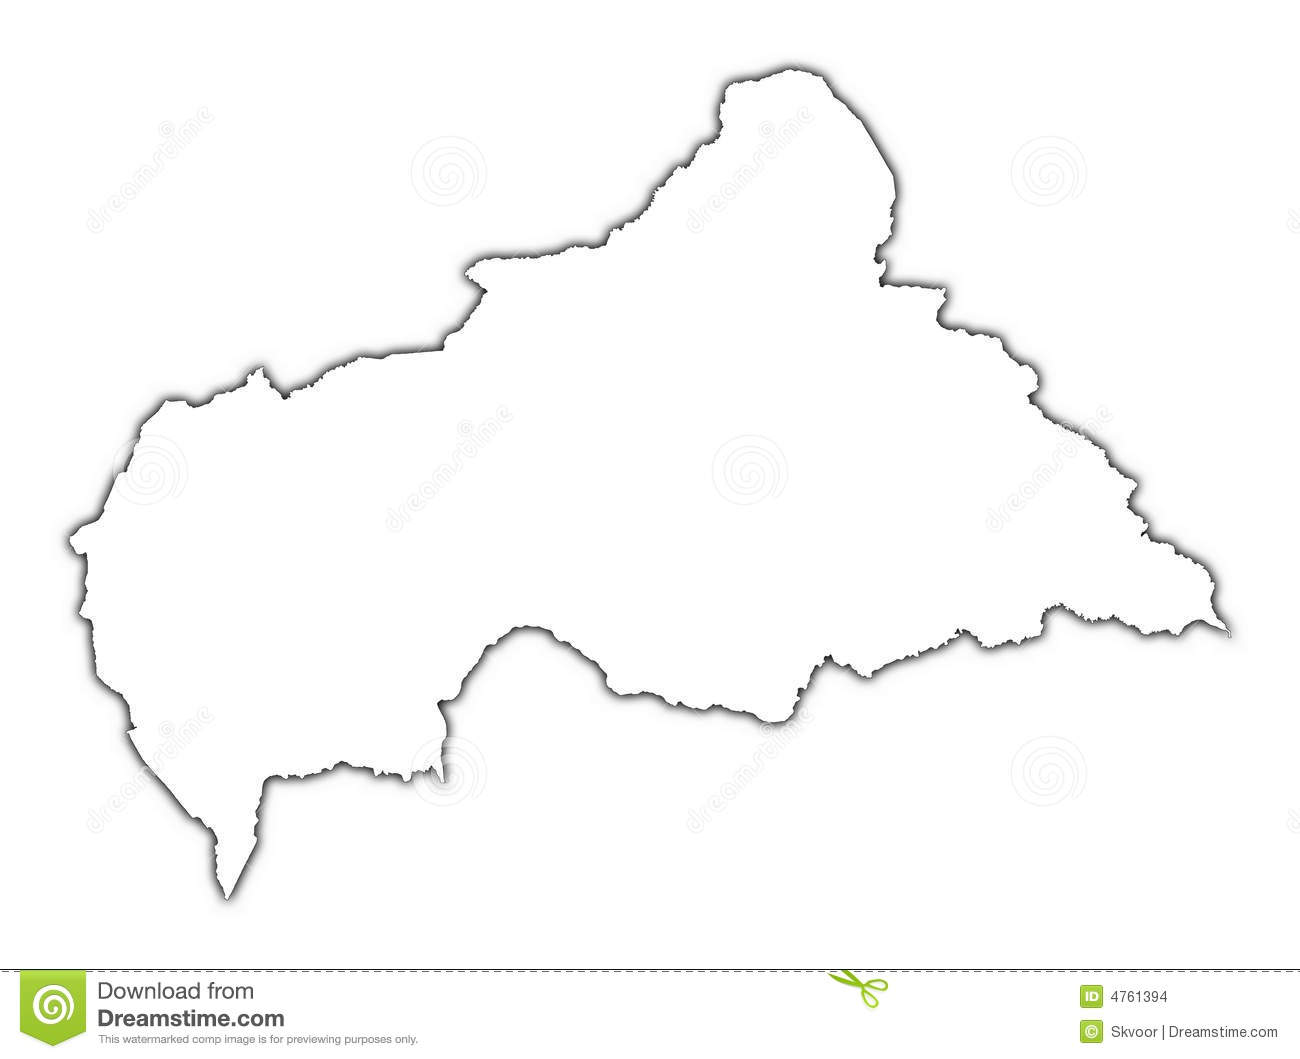 Central African Republic Map Stock Illustration   Illustration of